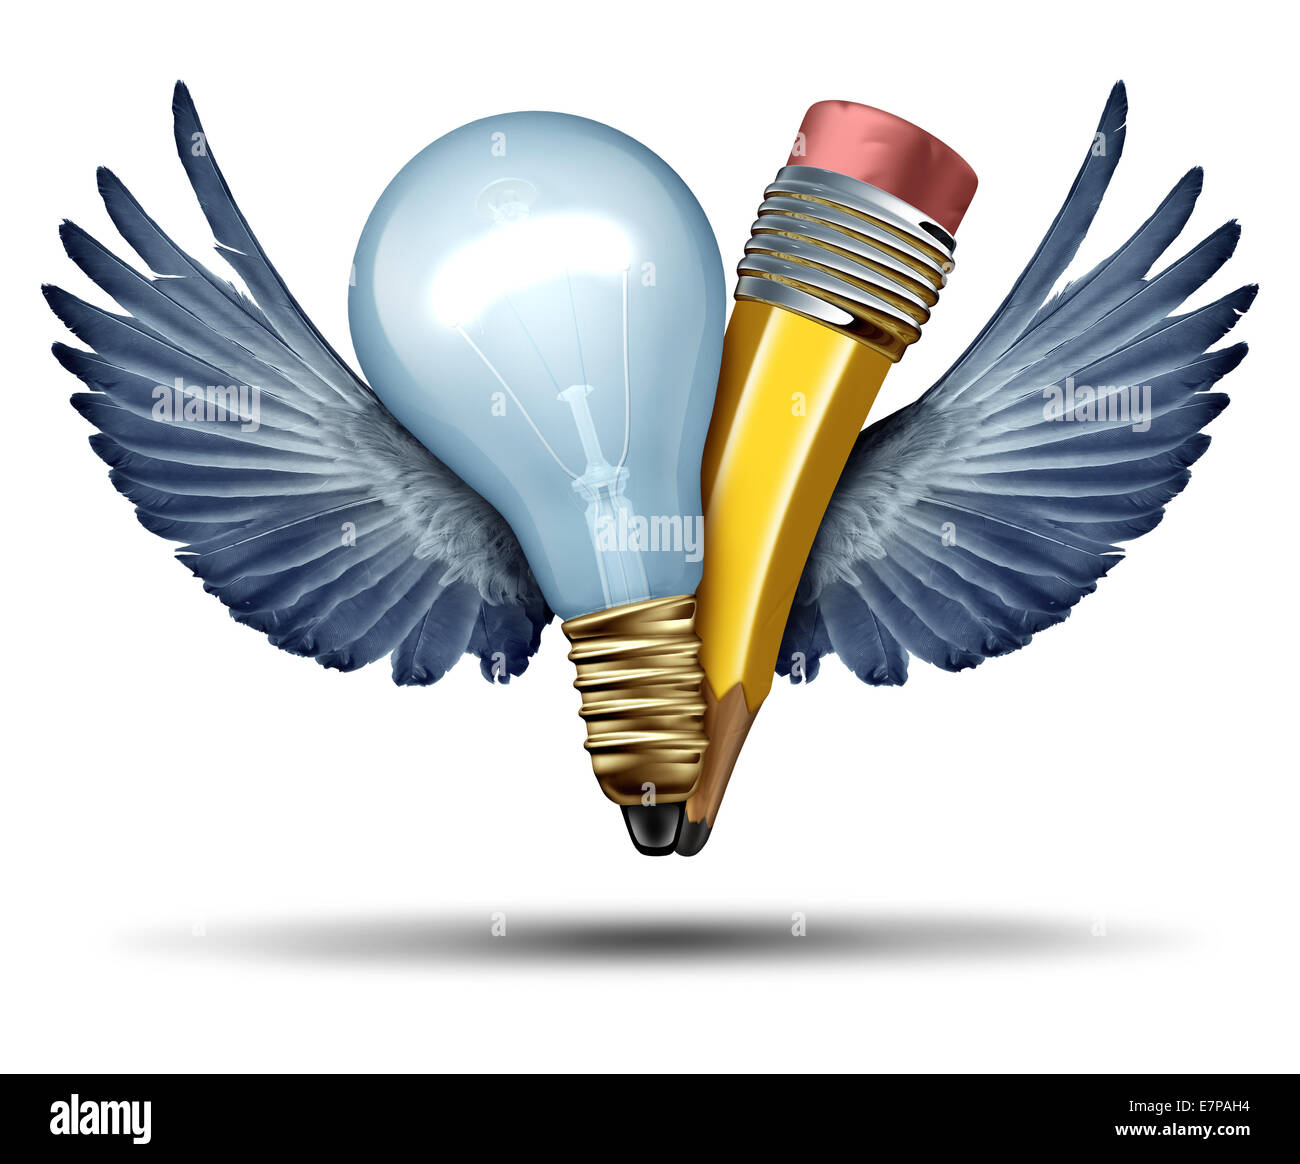 Creativity freedom concept as a lightbulb and pencil in a joint effort flying up with bird wings as a metaphor and - Stock Image